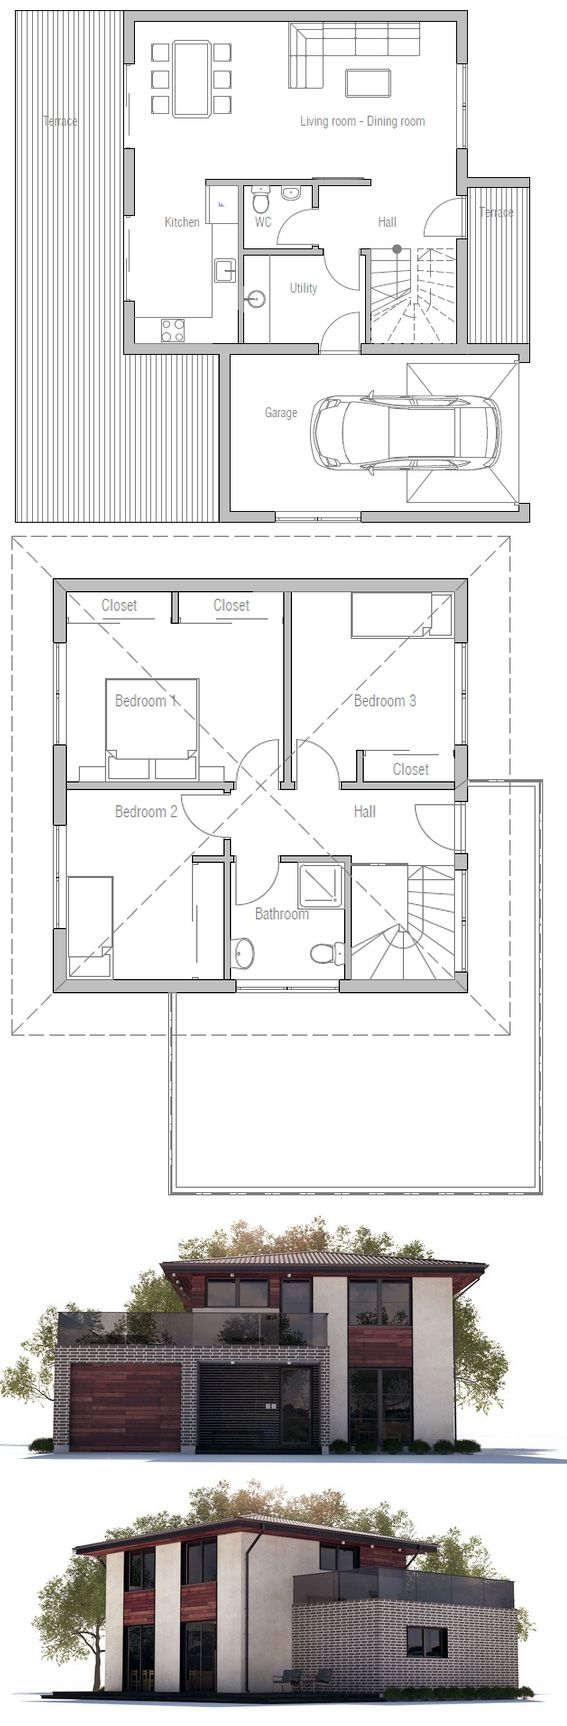 This is a great plan. Great upstairs deck over garage. Kitchen & dining open onto deck.  Course I'd arrange different as I want the kitchen to open onto livng. Dining by entry as usually your dining room is clean.  Plumbing consolidated. Utility open to garage. I'd put some storage under stairs. HAve a garage door open onto deck from garage. Change the  utility/bath area a bit to combine/add shower.  Ugly facade though. Try Spring Green.